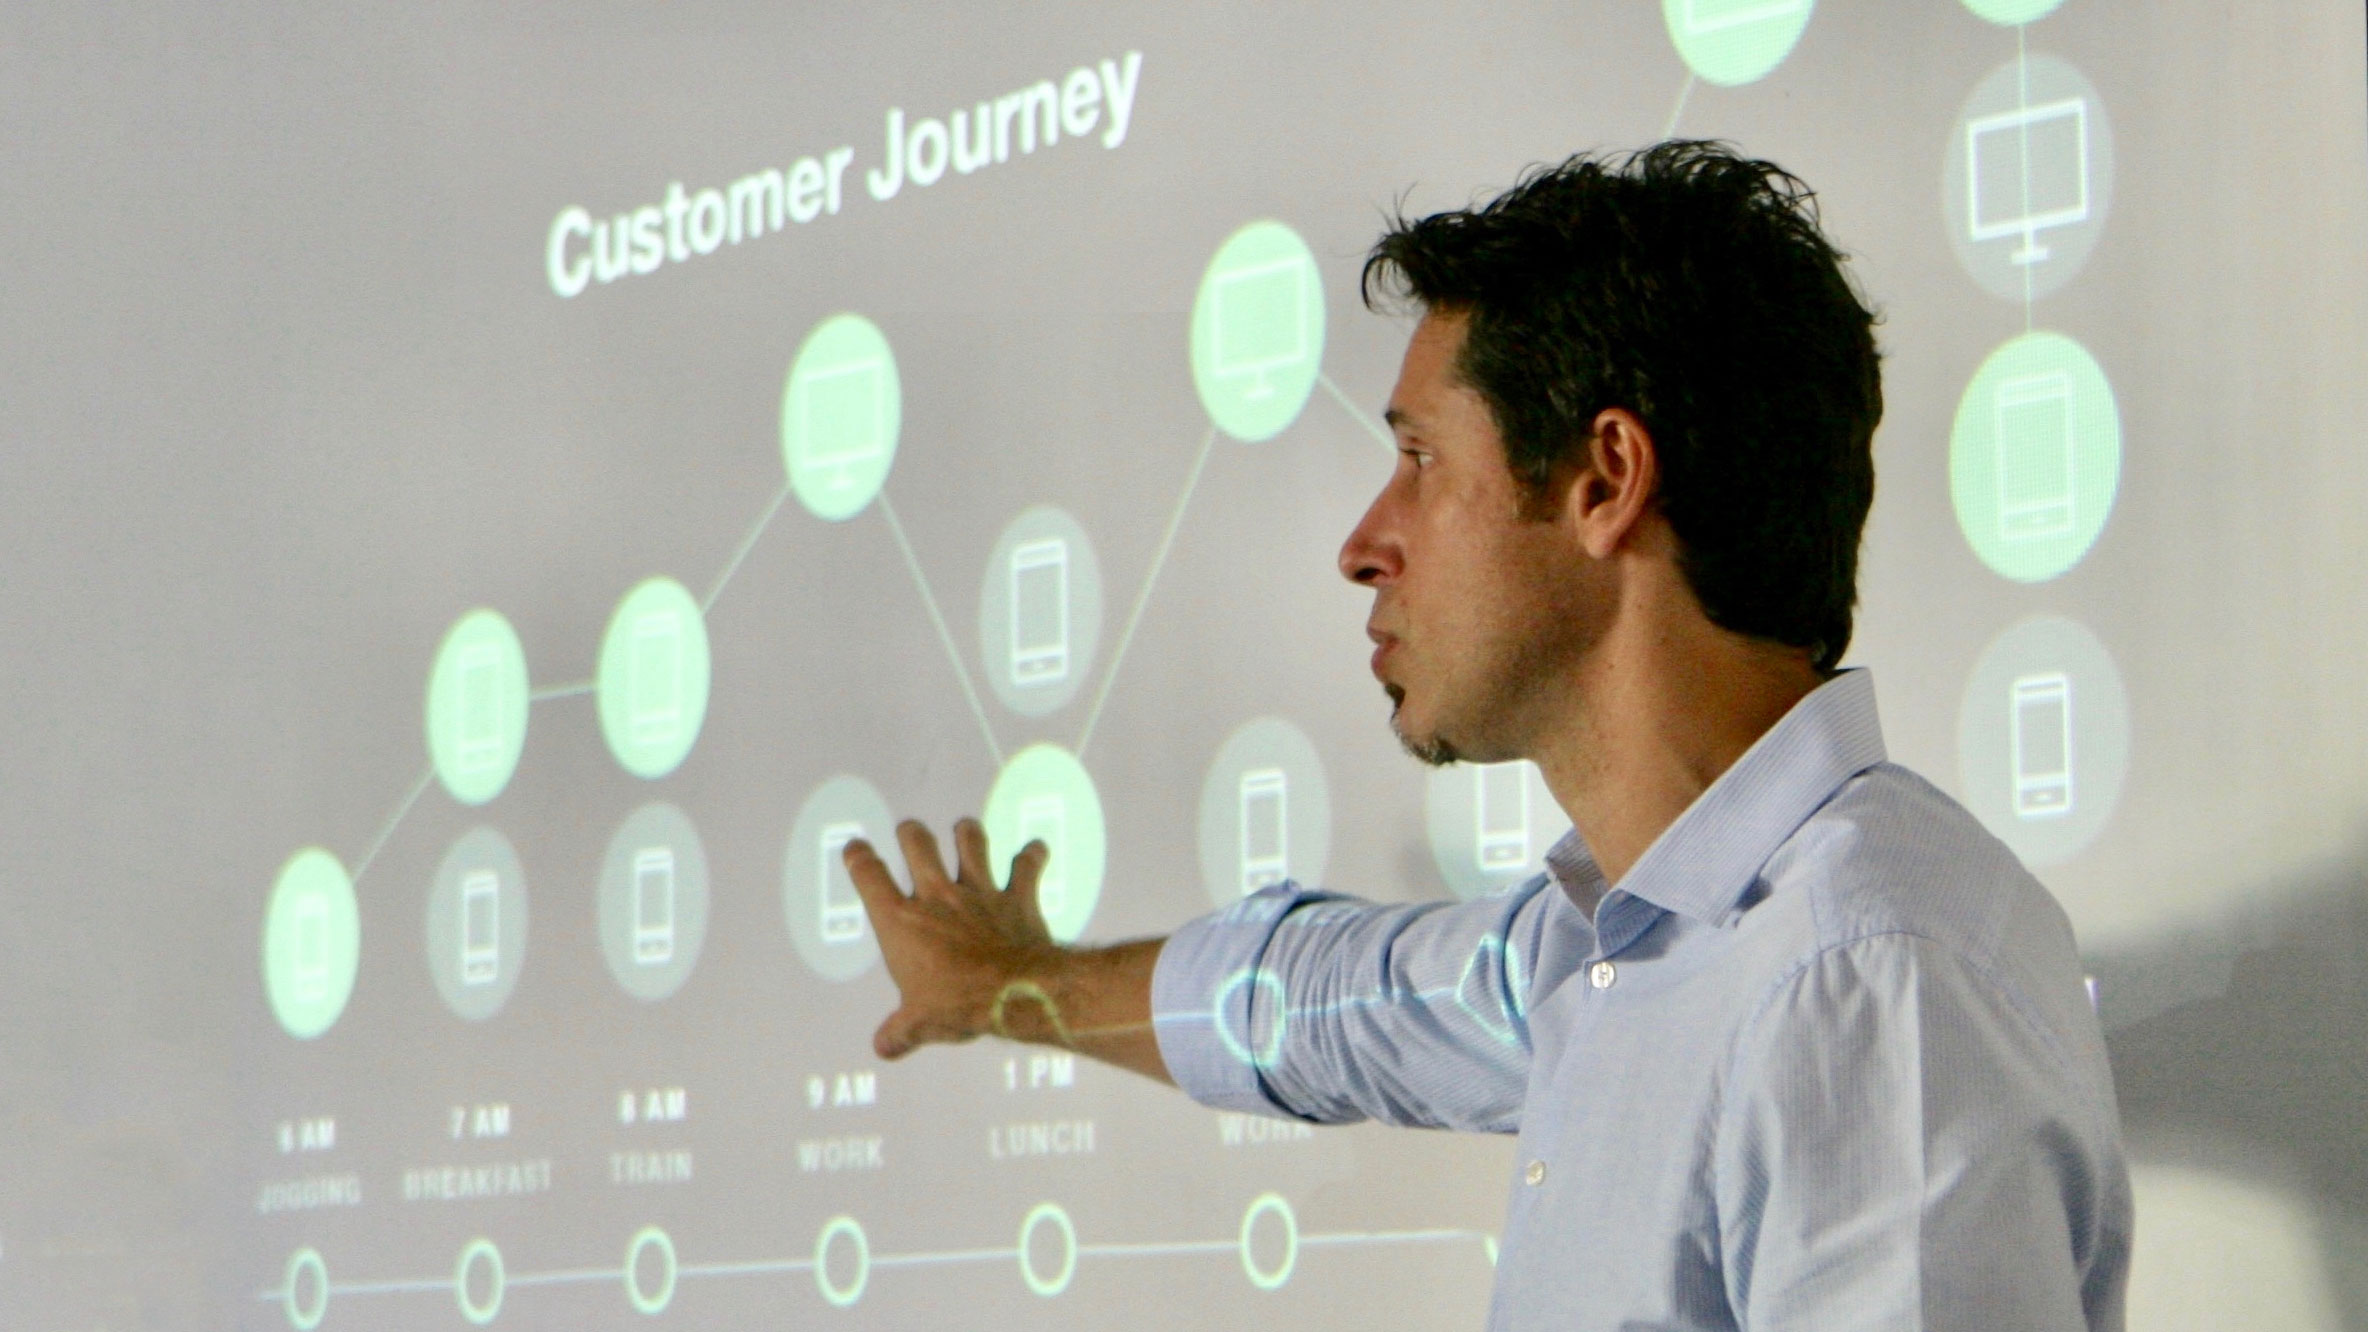 Gabriel Celemin Customer Journey